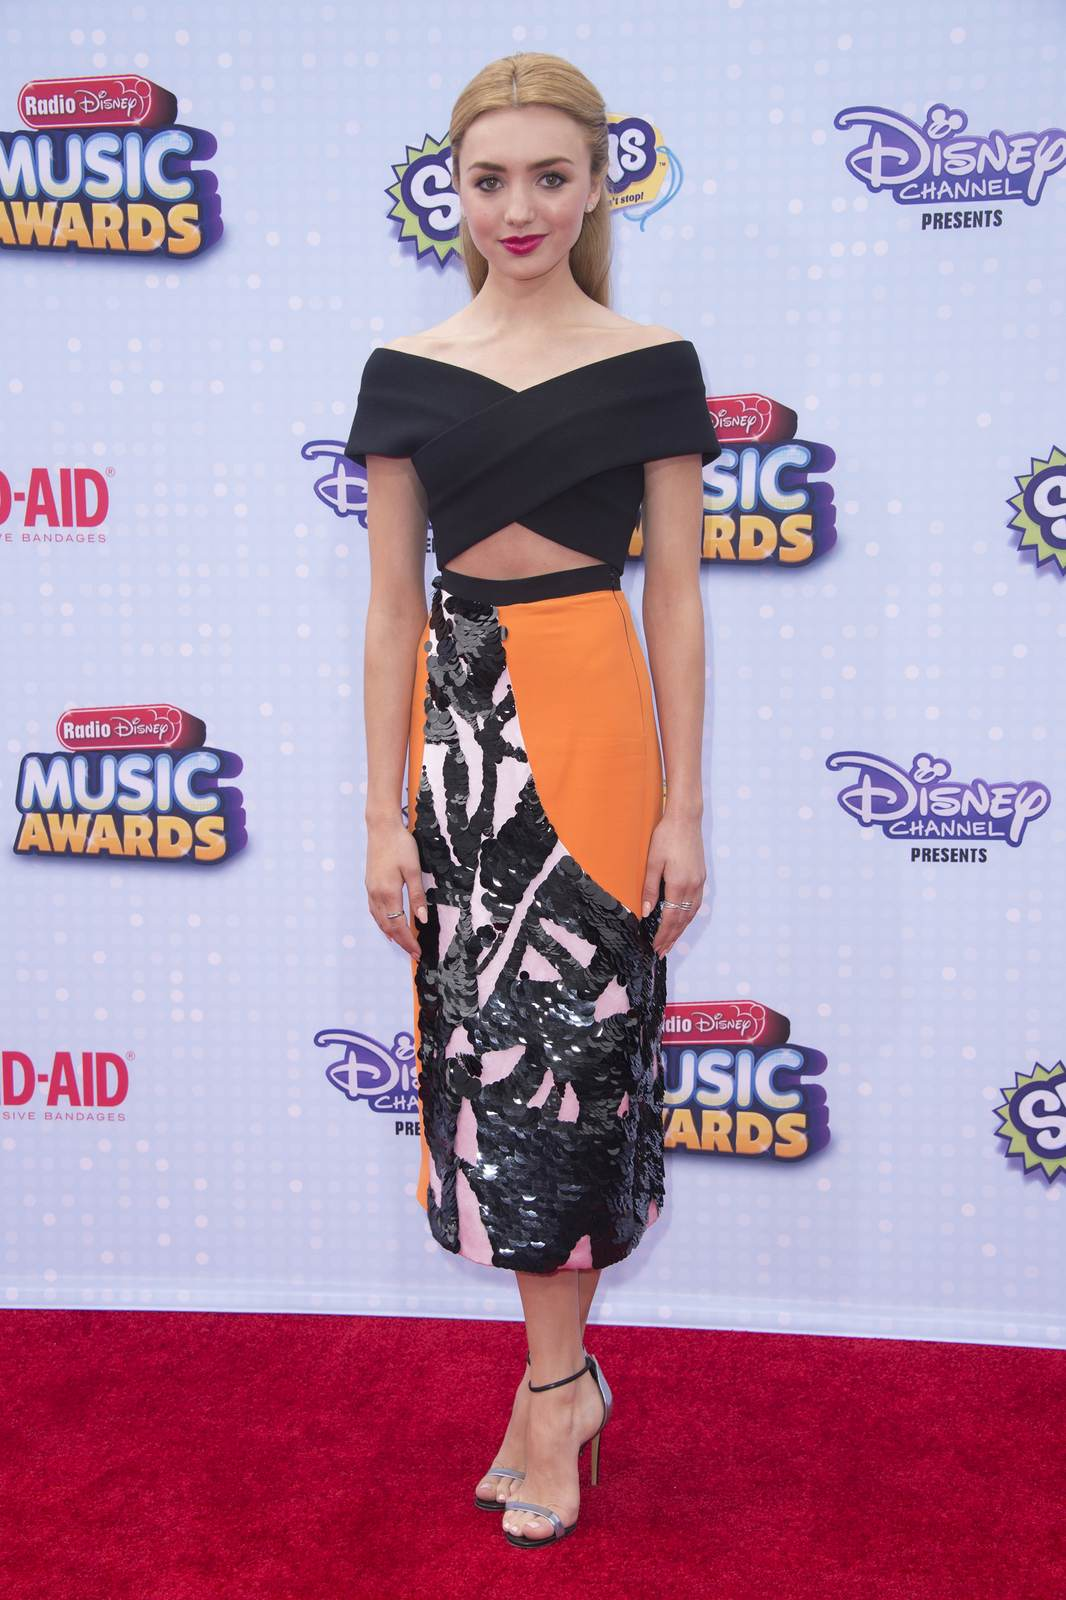 disney music awards12 Radio Disney Music Awards 2015   Winners